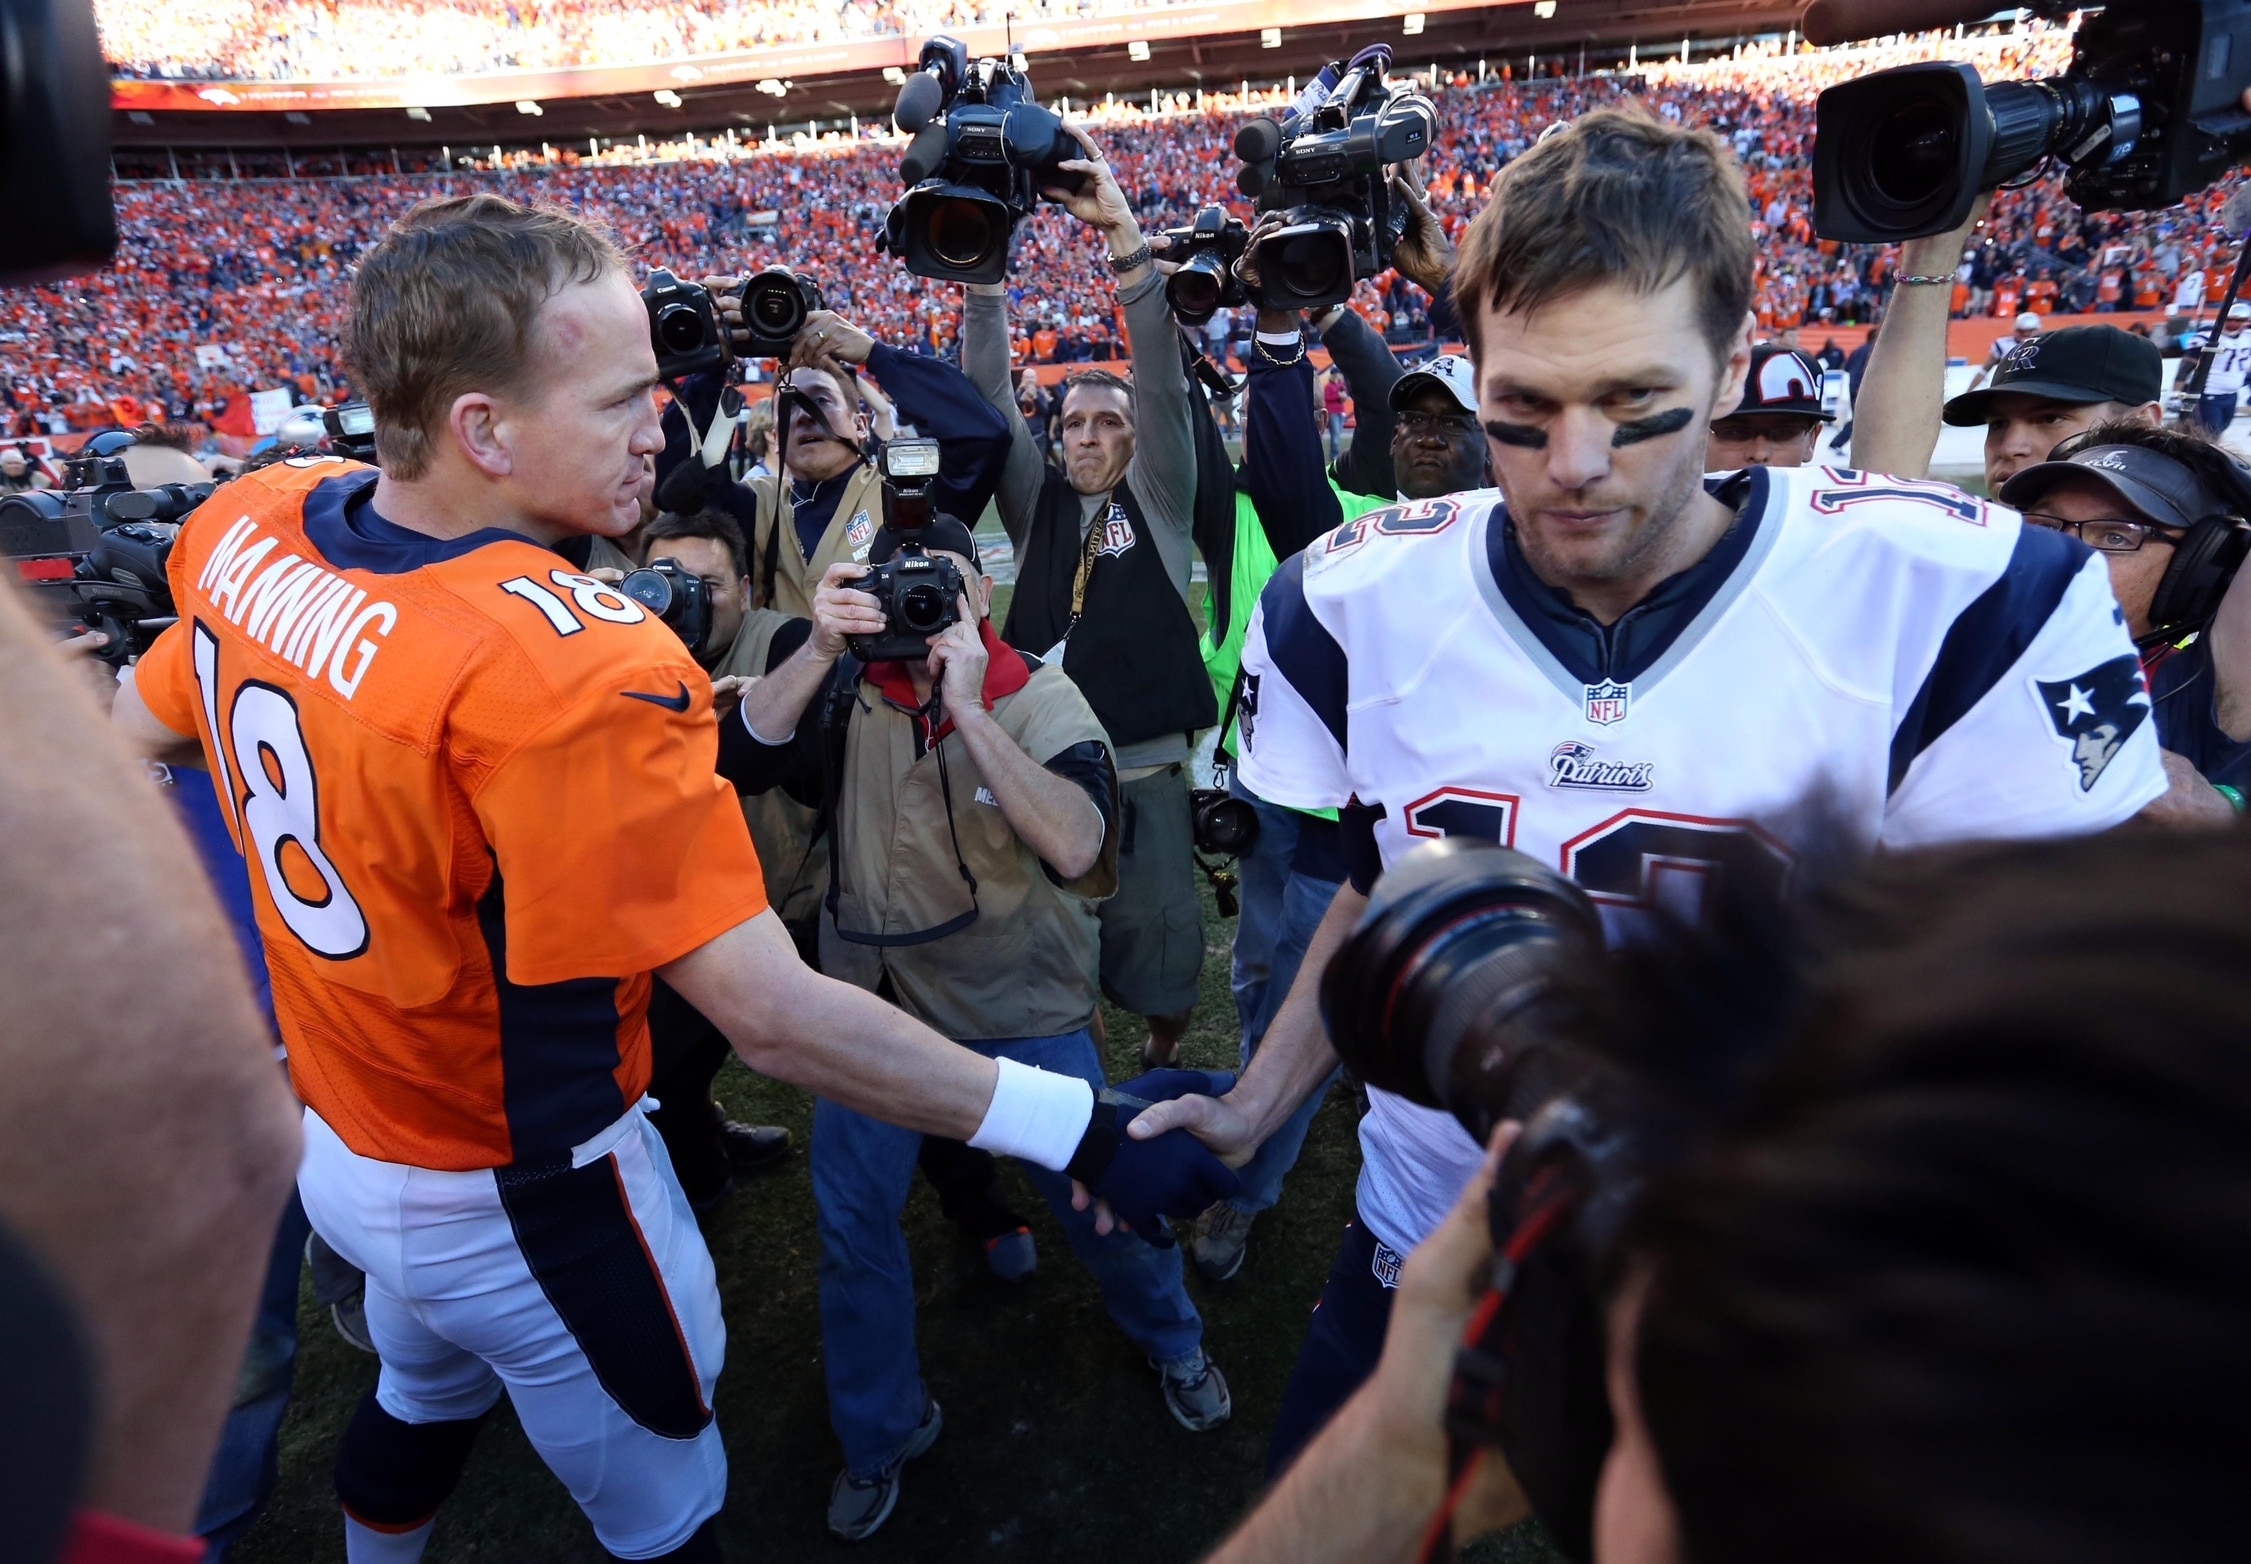 Courtesy of USA Today Images